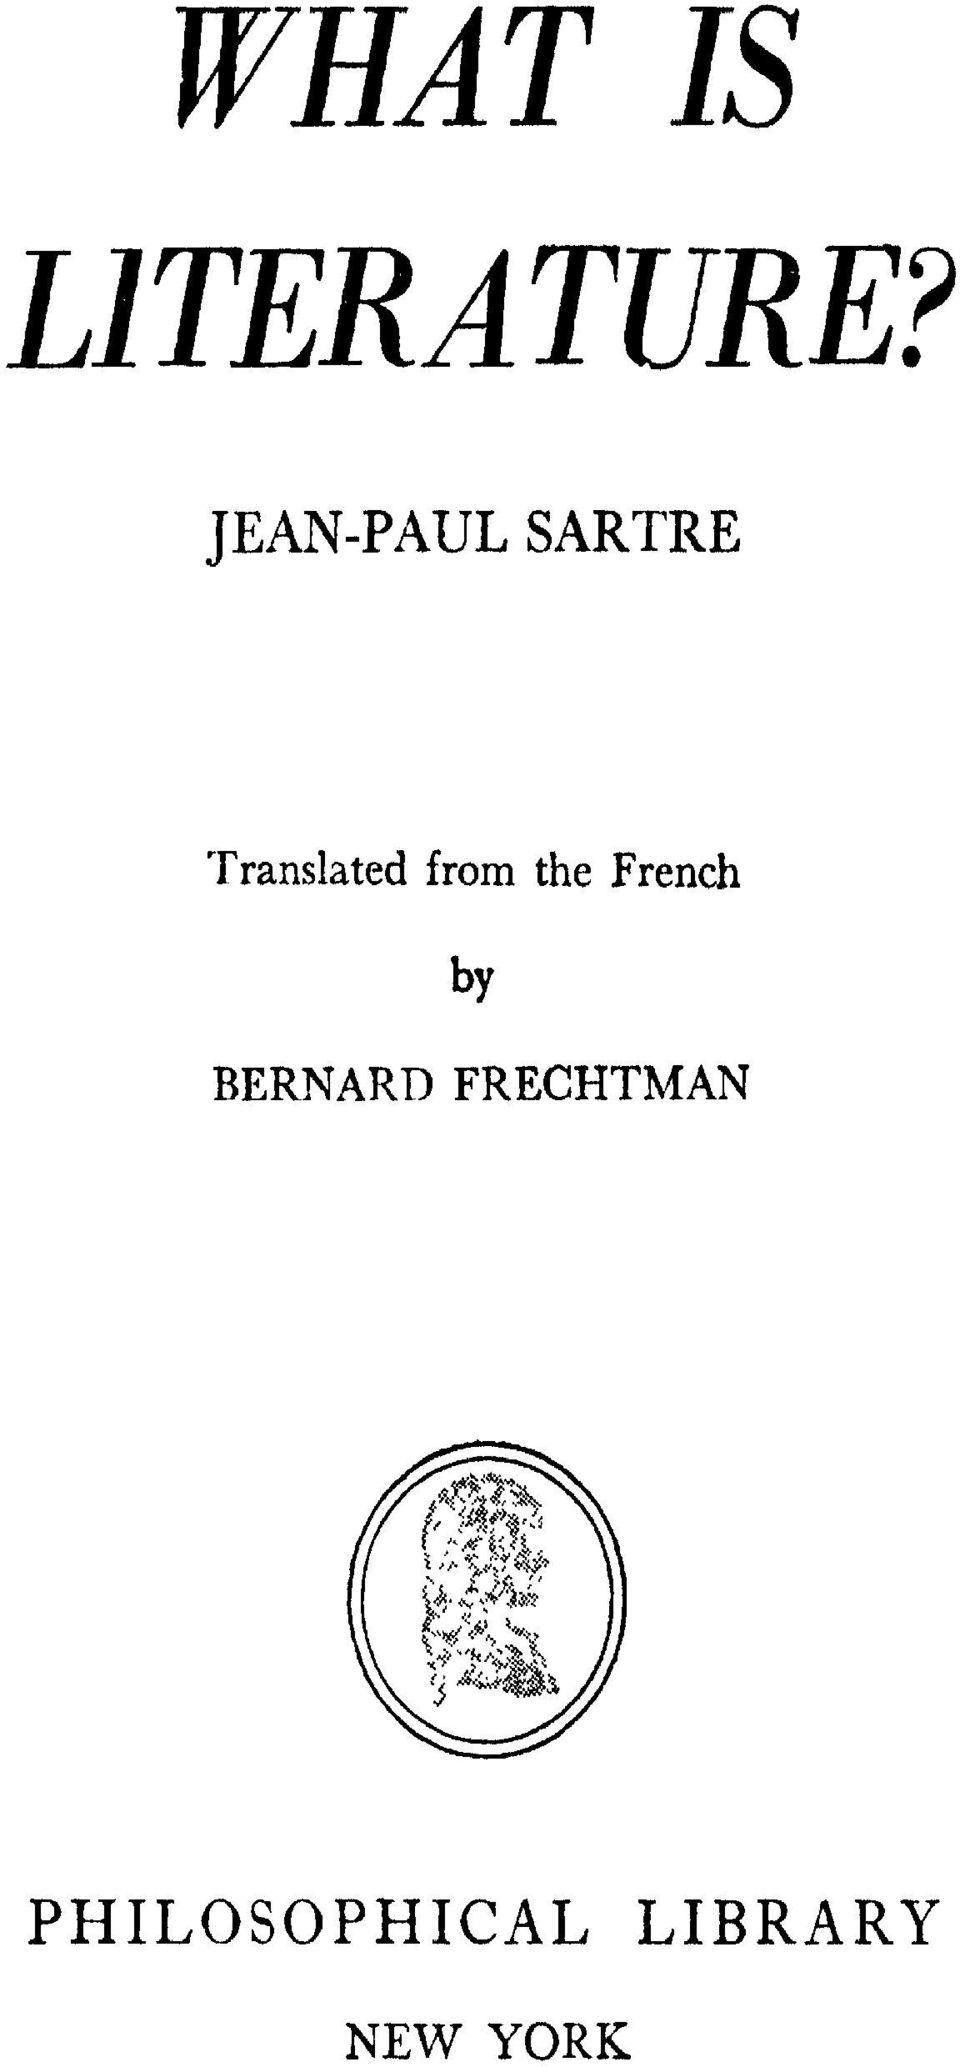 from the French by BERNARD